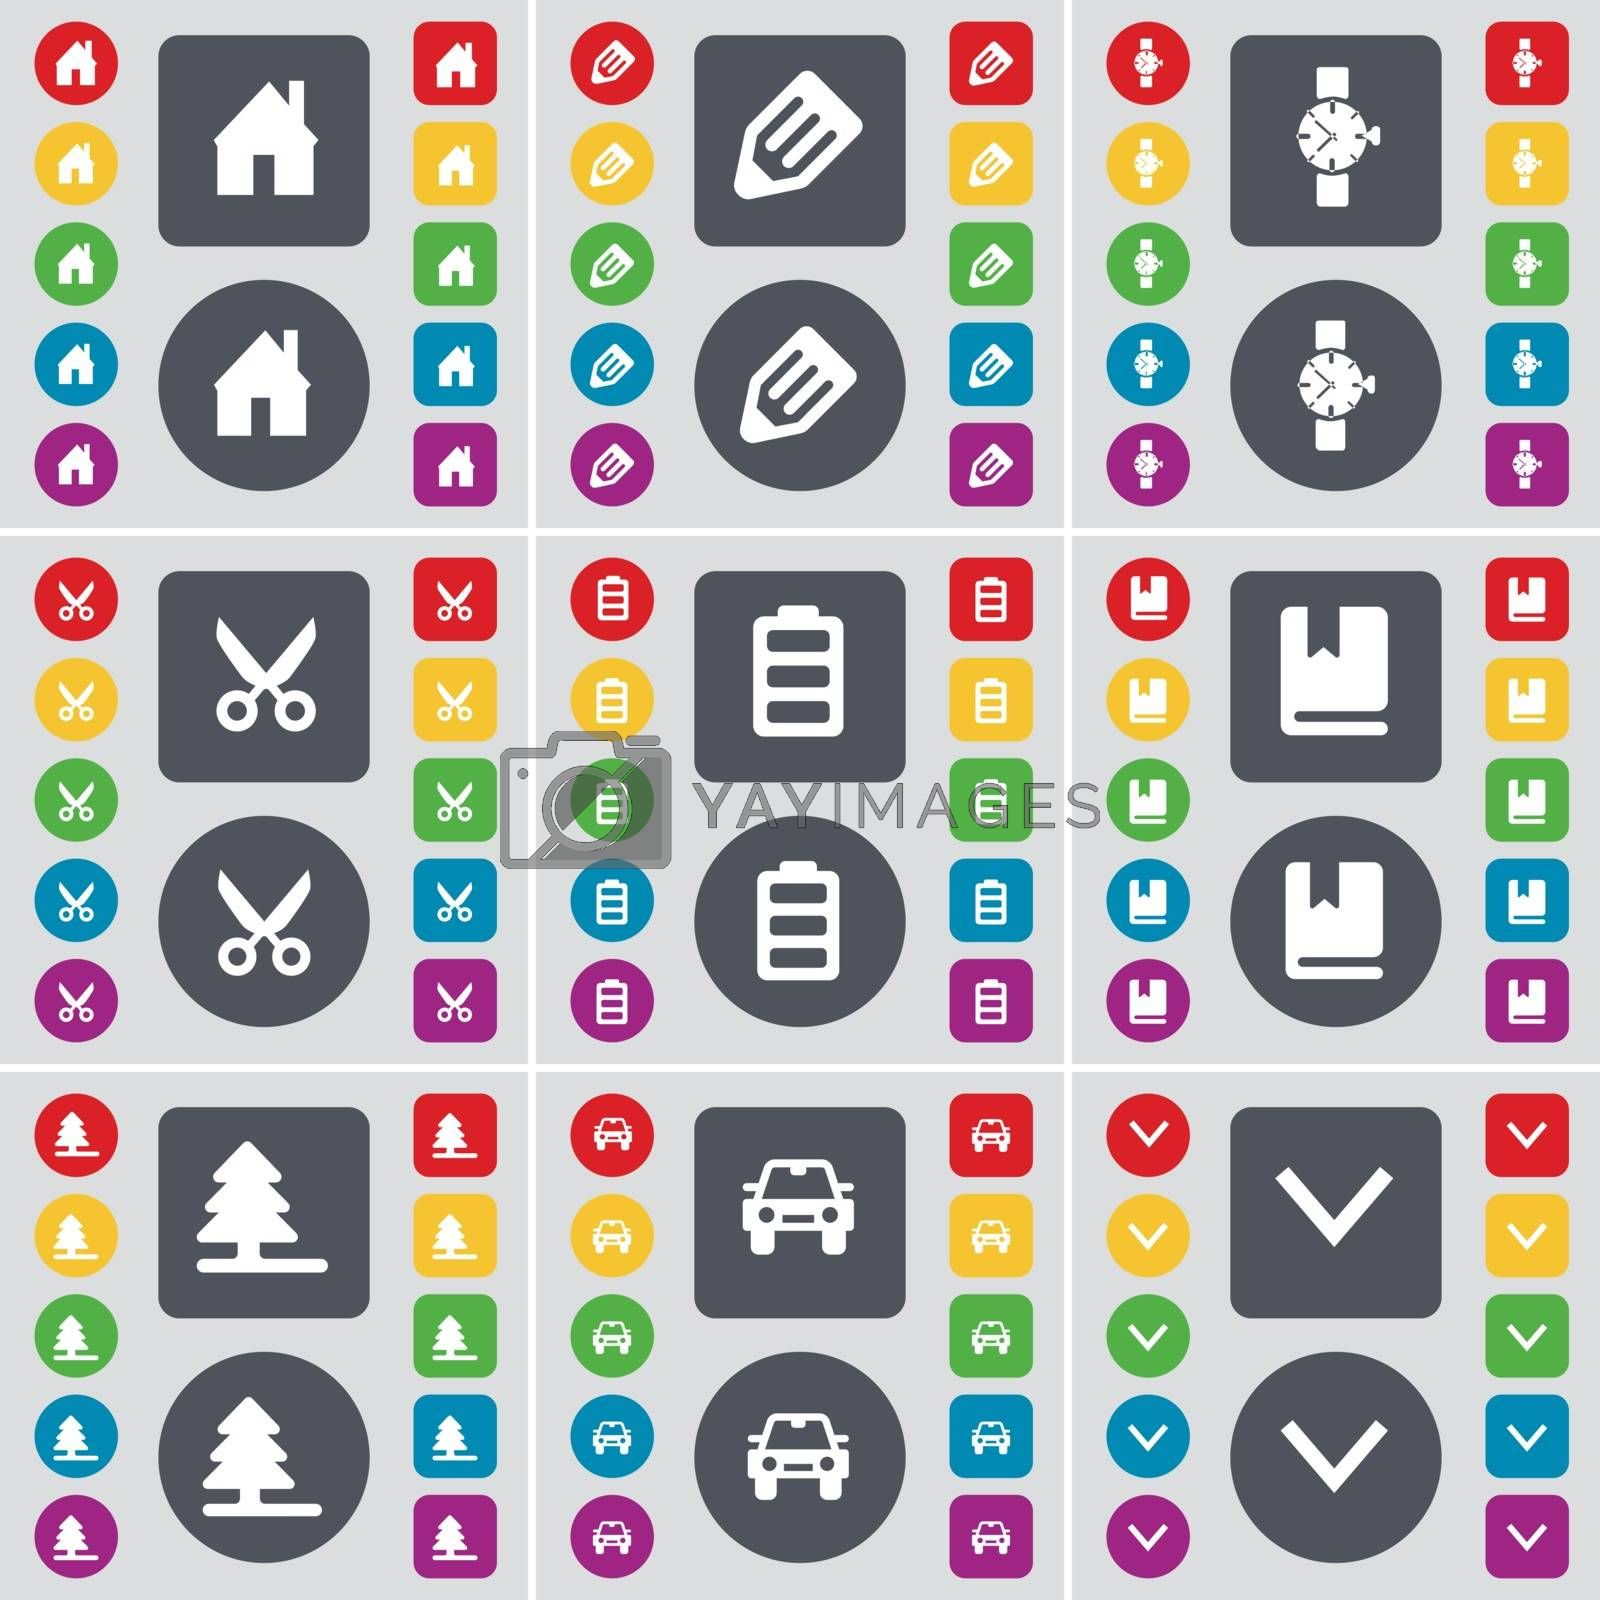 Royalty free image of House, Pencil, Wrist watch, Scissors, Battery, Dictionary, Firtree, Car, Arrow down icon symbol. A large set of flat, colored buttons for your design. Vector by serhii_lohvyniuk